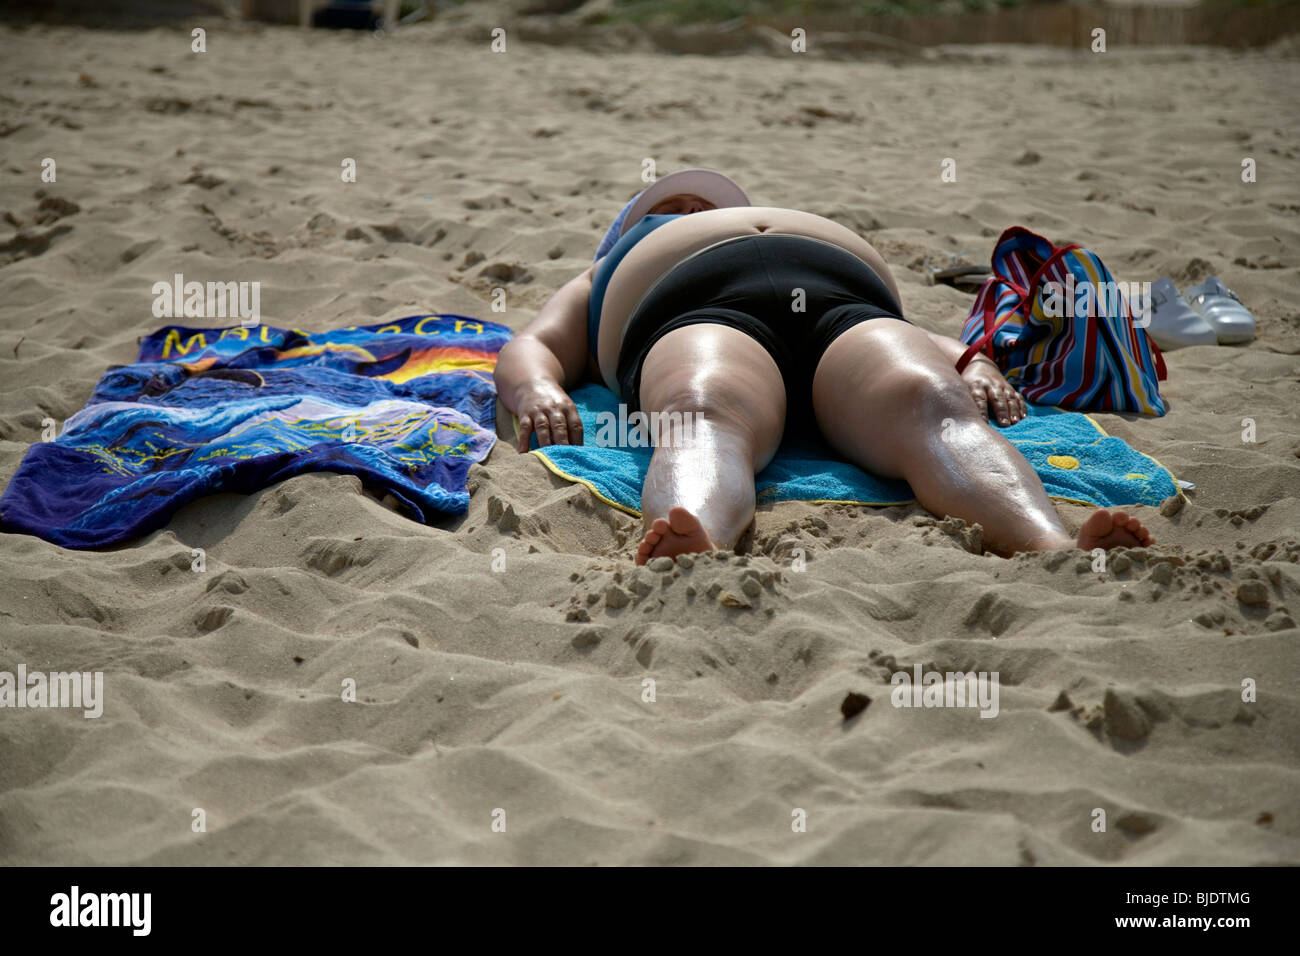 an obsese sunbather - Stock Image